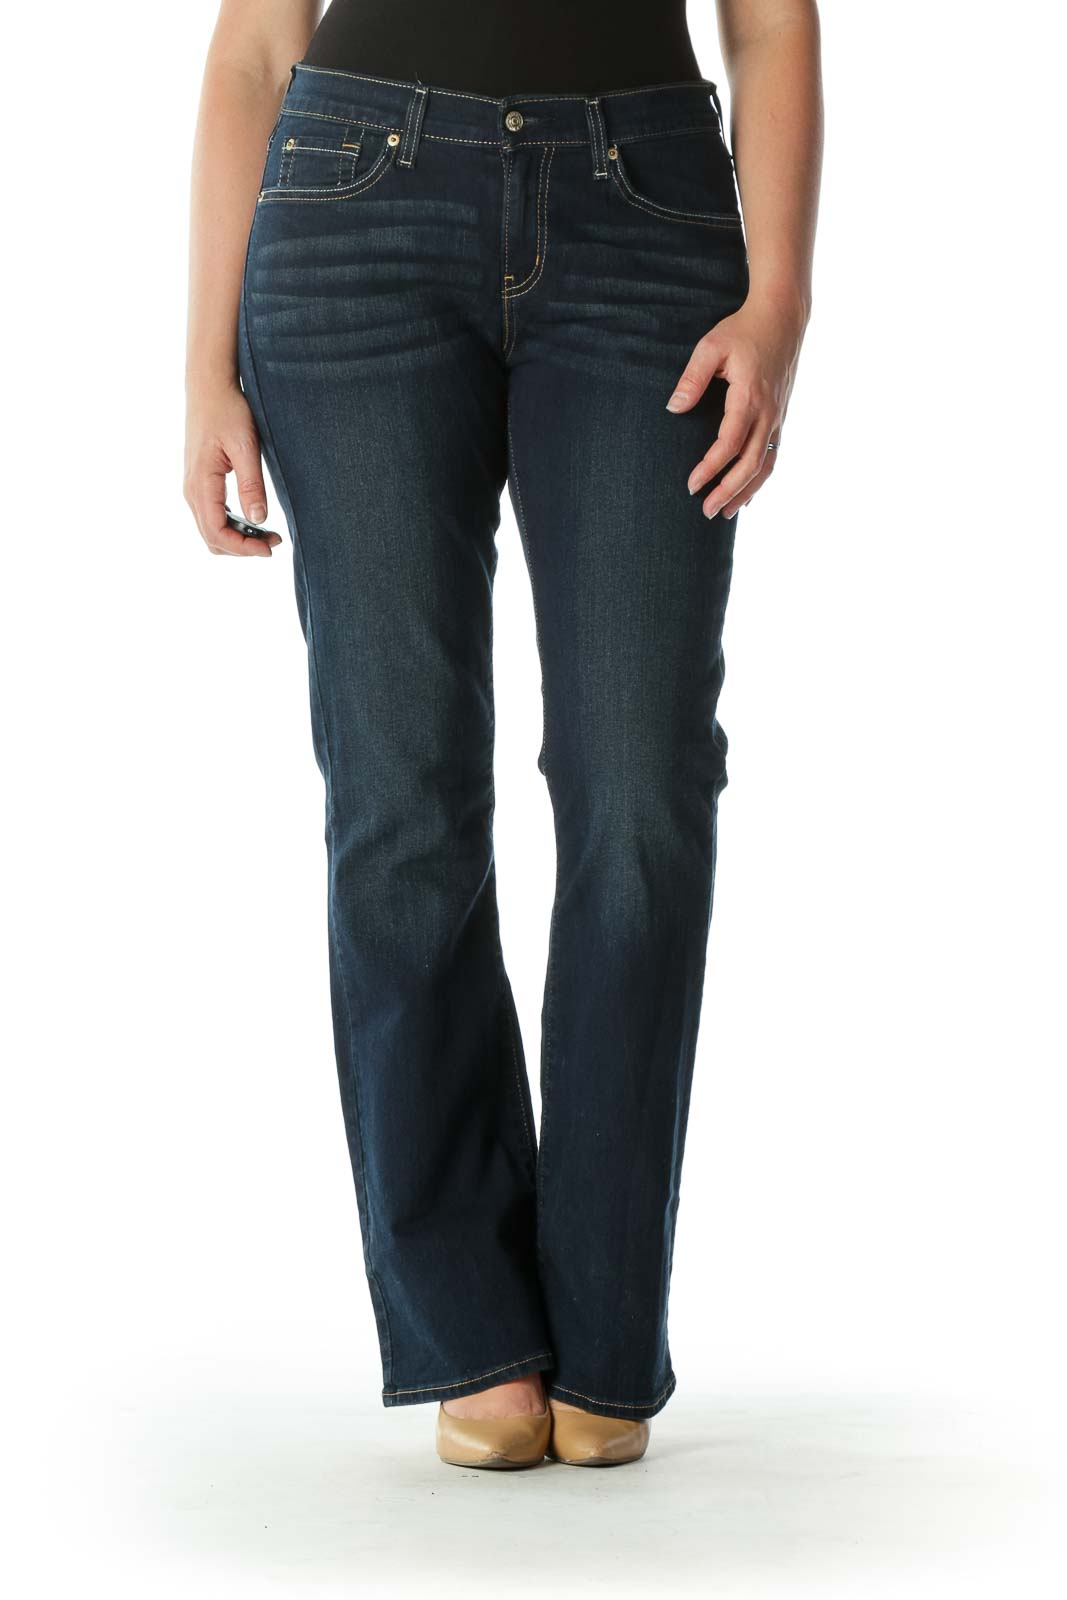 Blue Dark-Wash Bootcut Denim Jeans